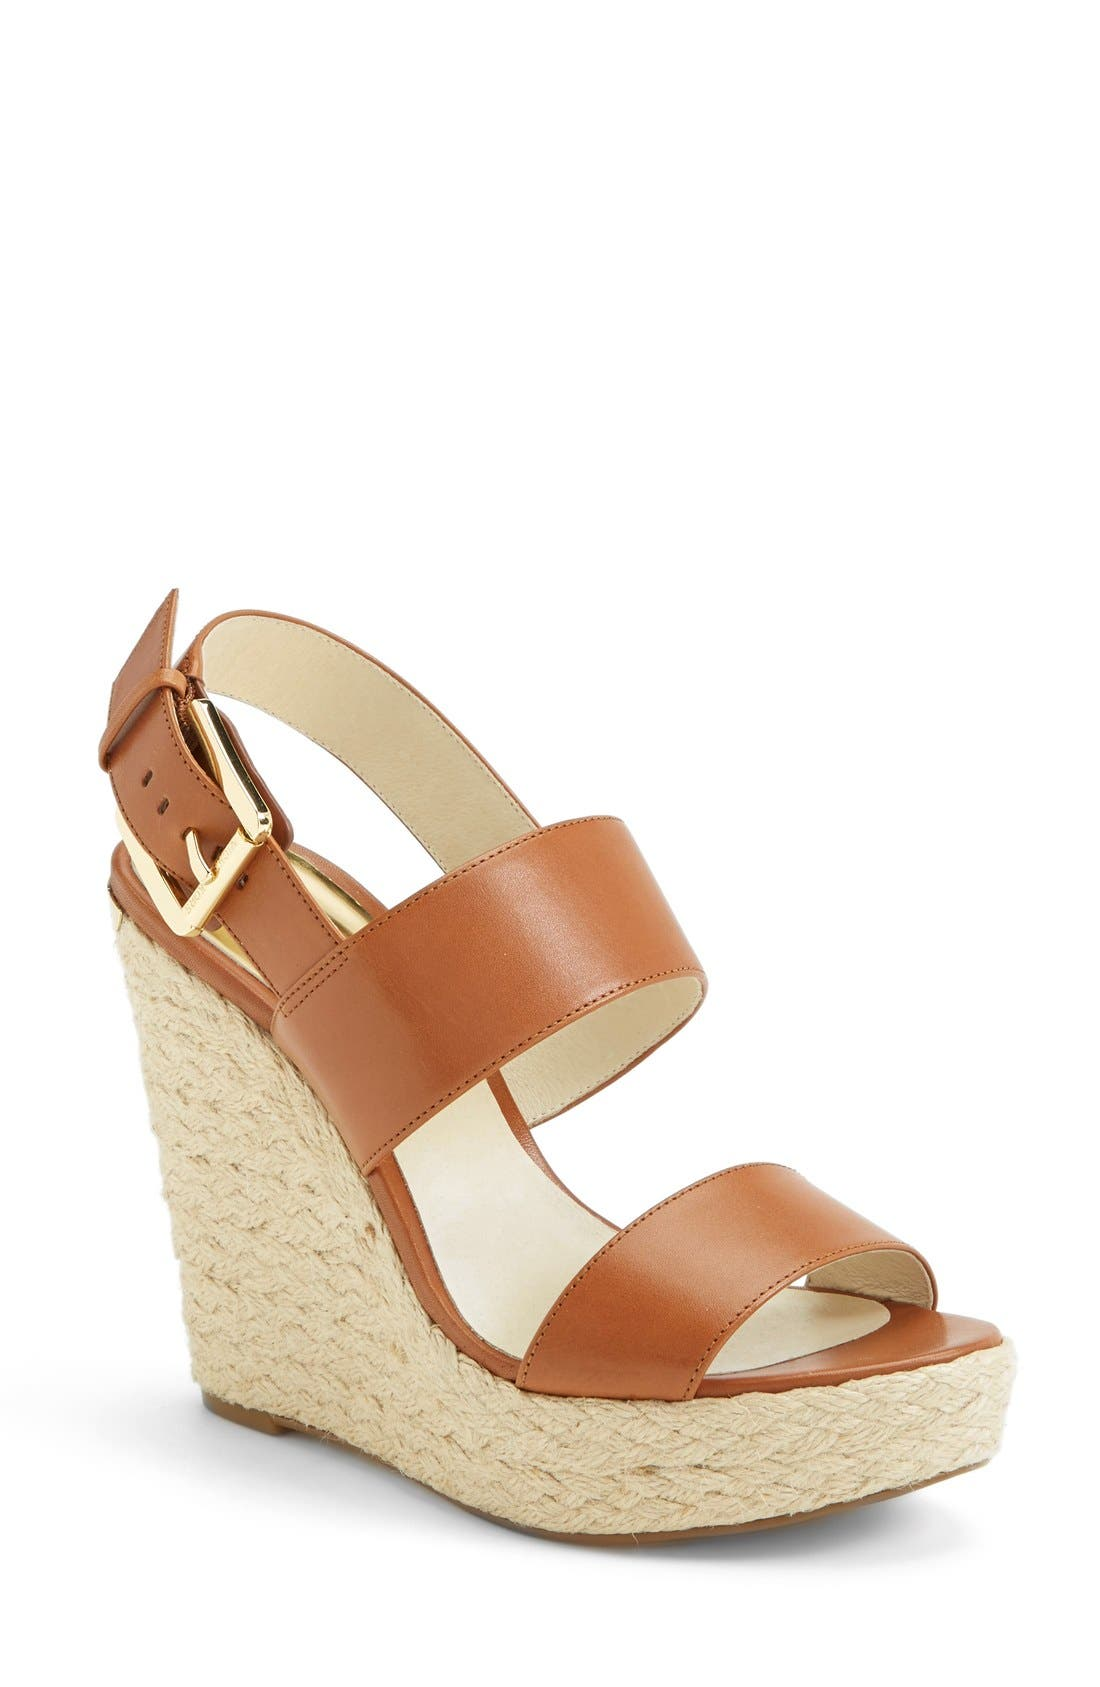 Alternate Image 1 Selected - MICHAEL Michael Kors 'Posey' Espadrille Wedge Sandal (Women)